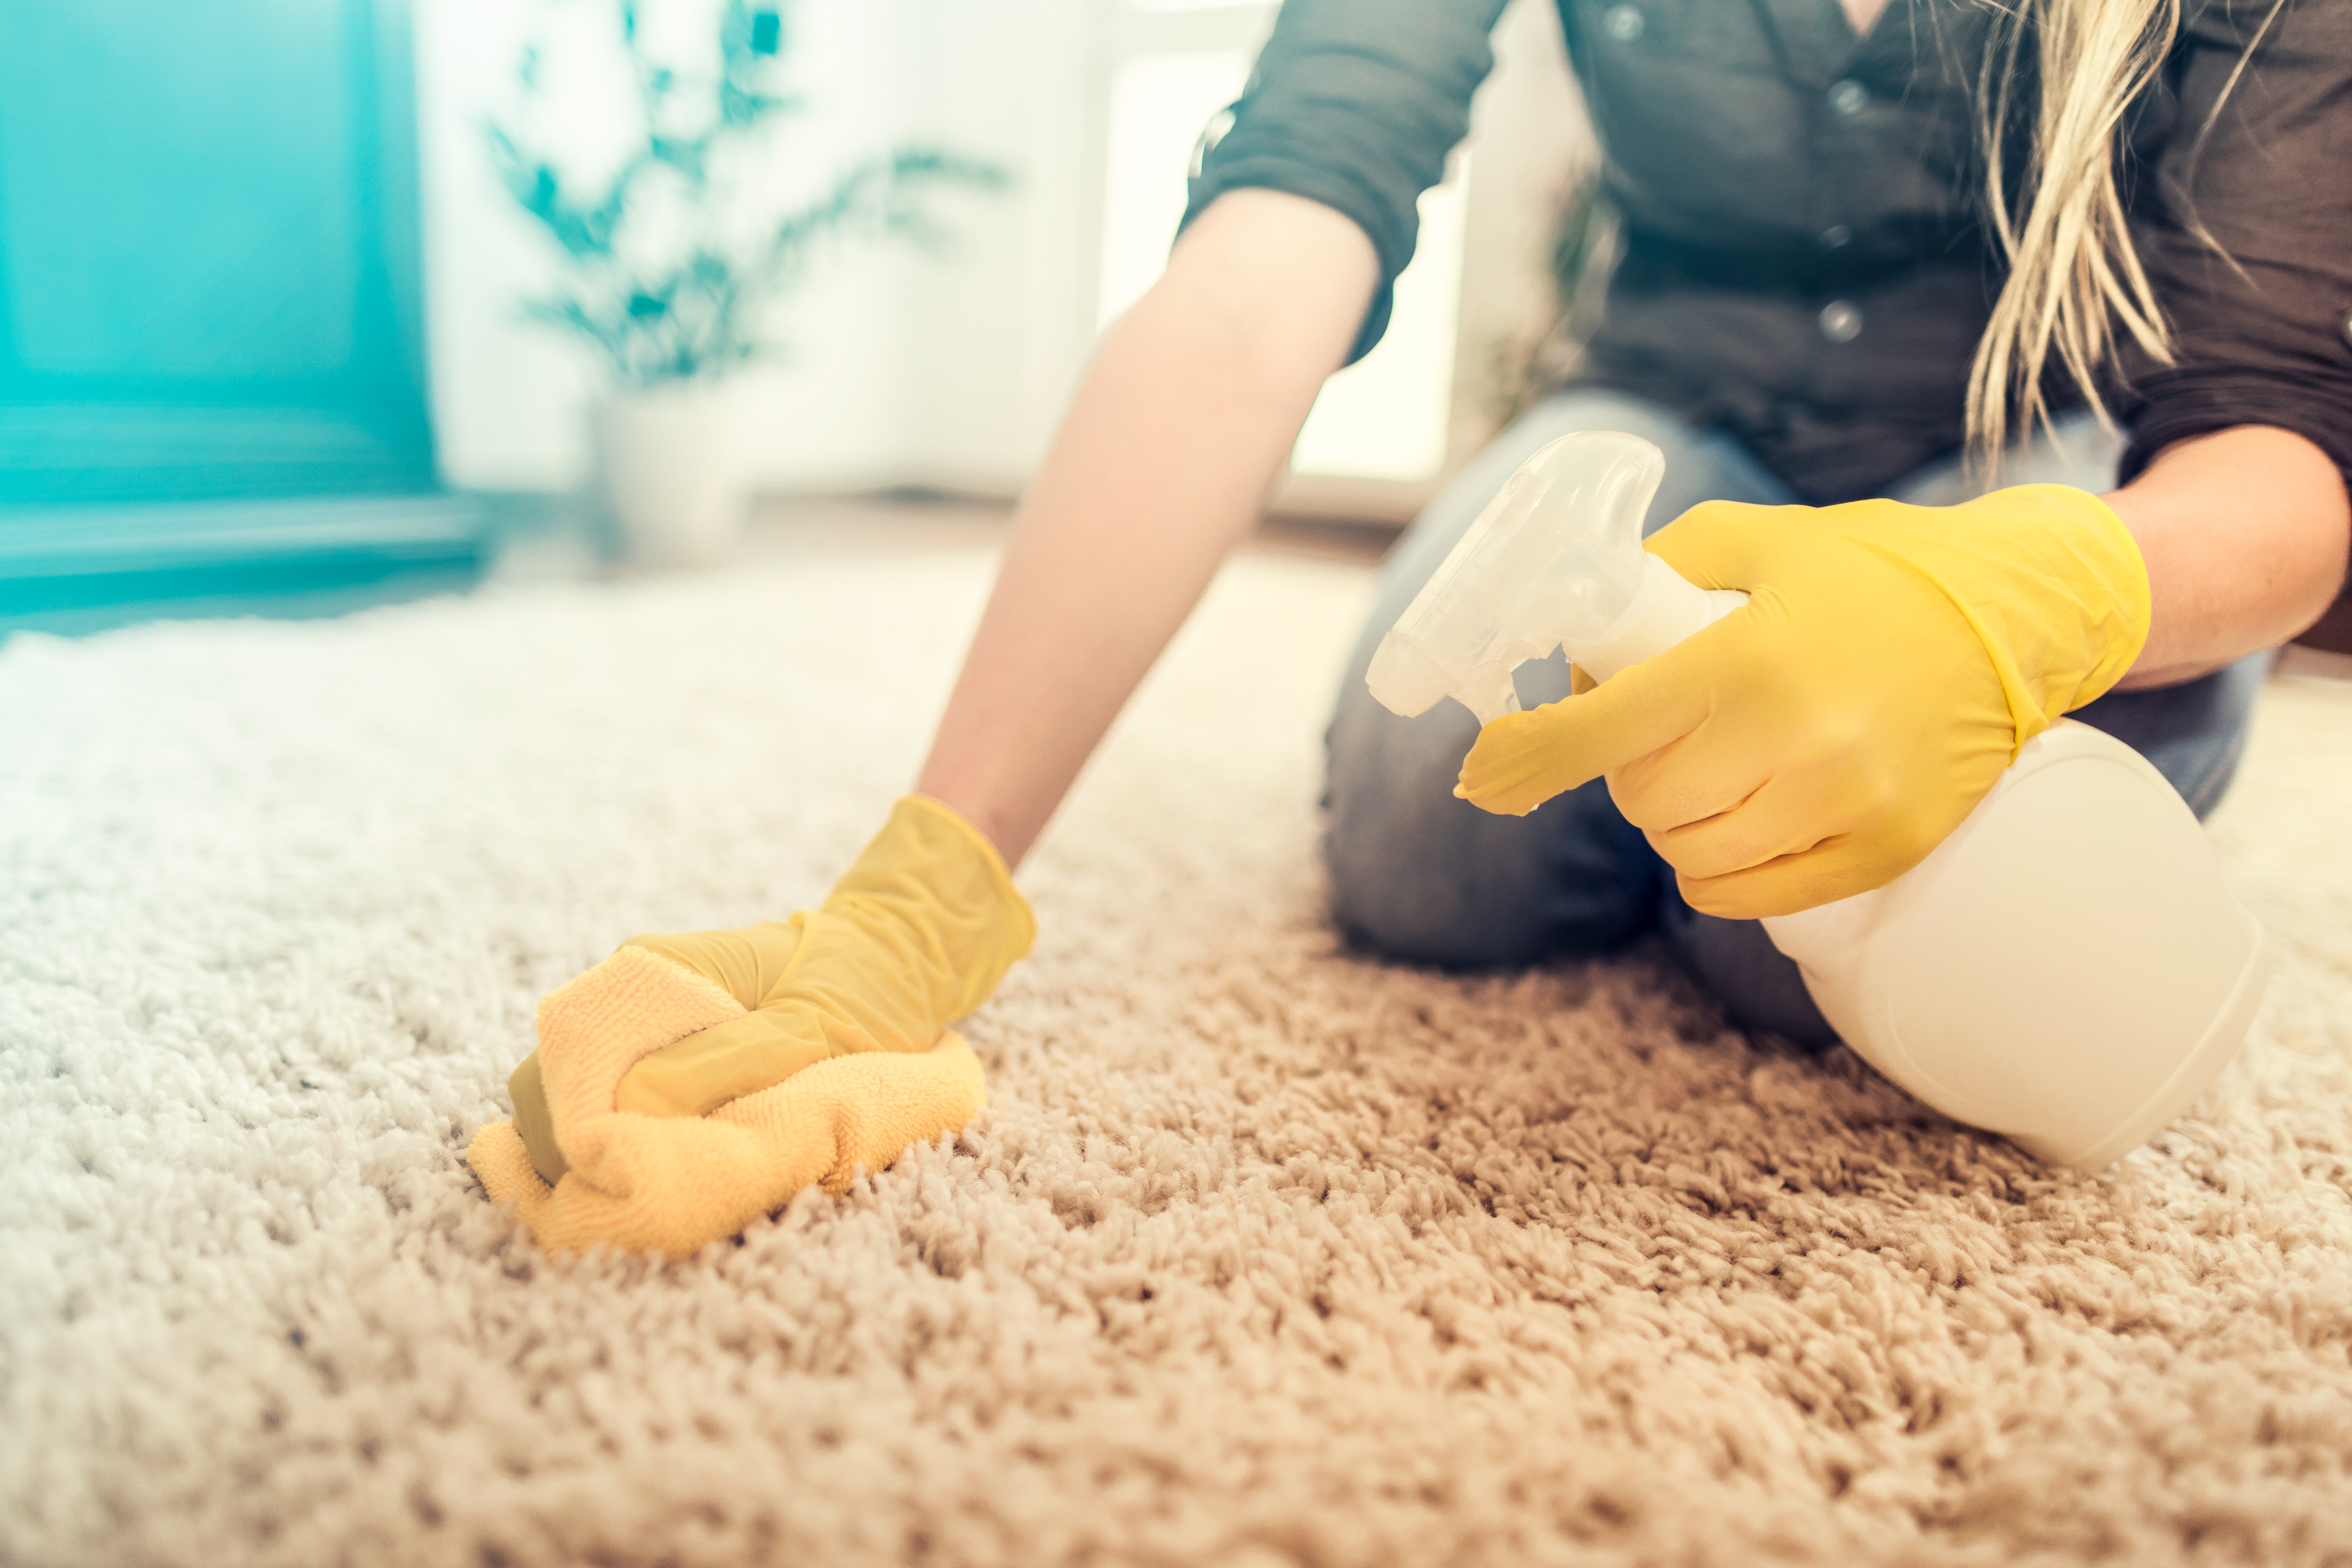 How to Remove Vomit Smell From Carpet | Hunker